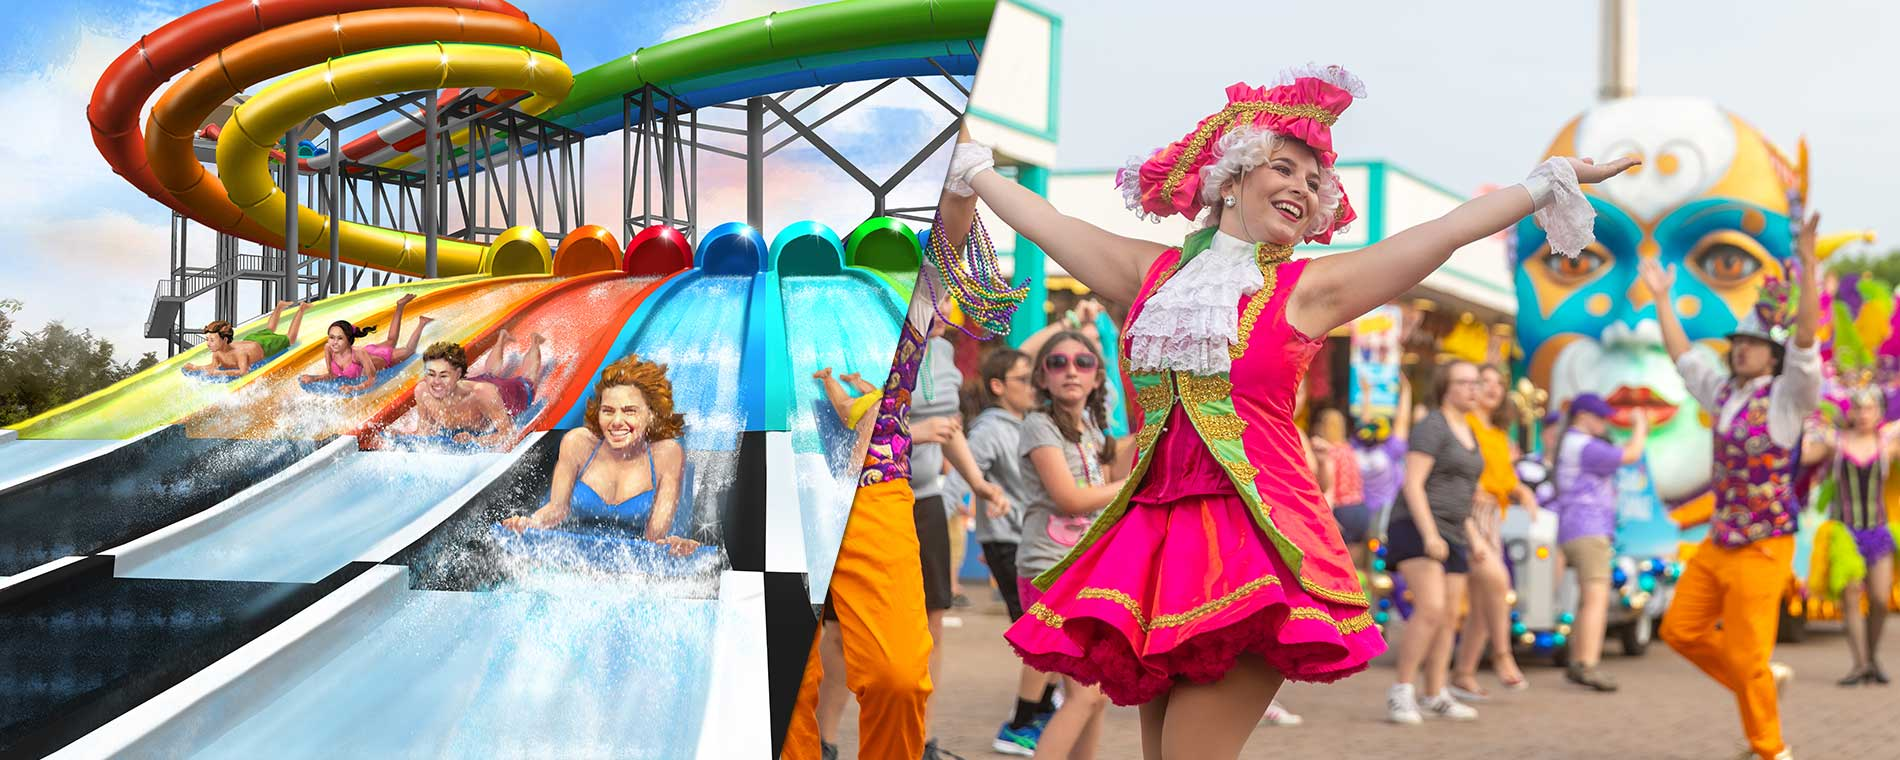 Boogie Board Racer and Grand Carnivale at Carowinds